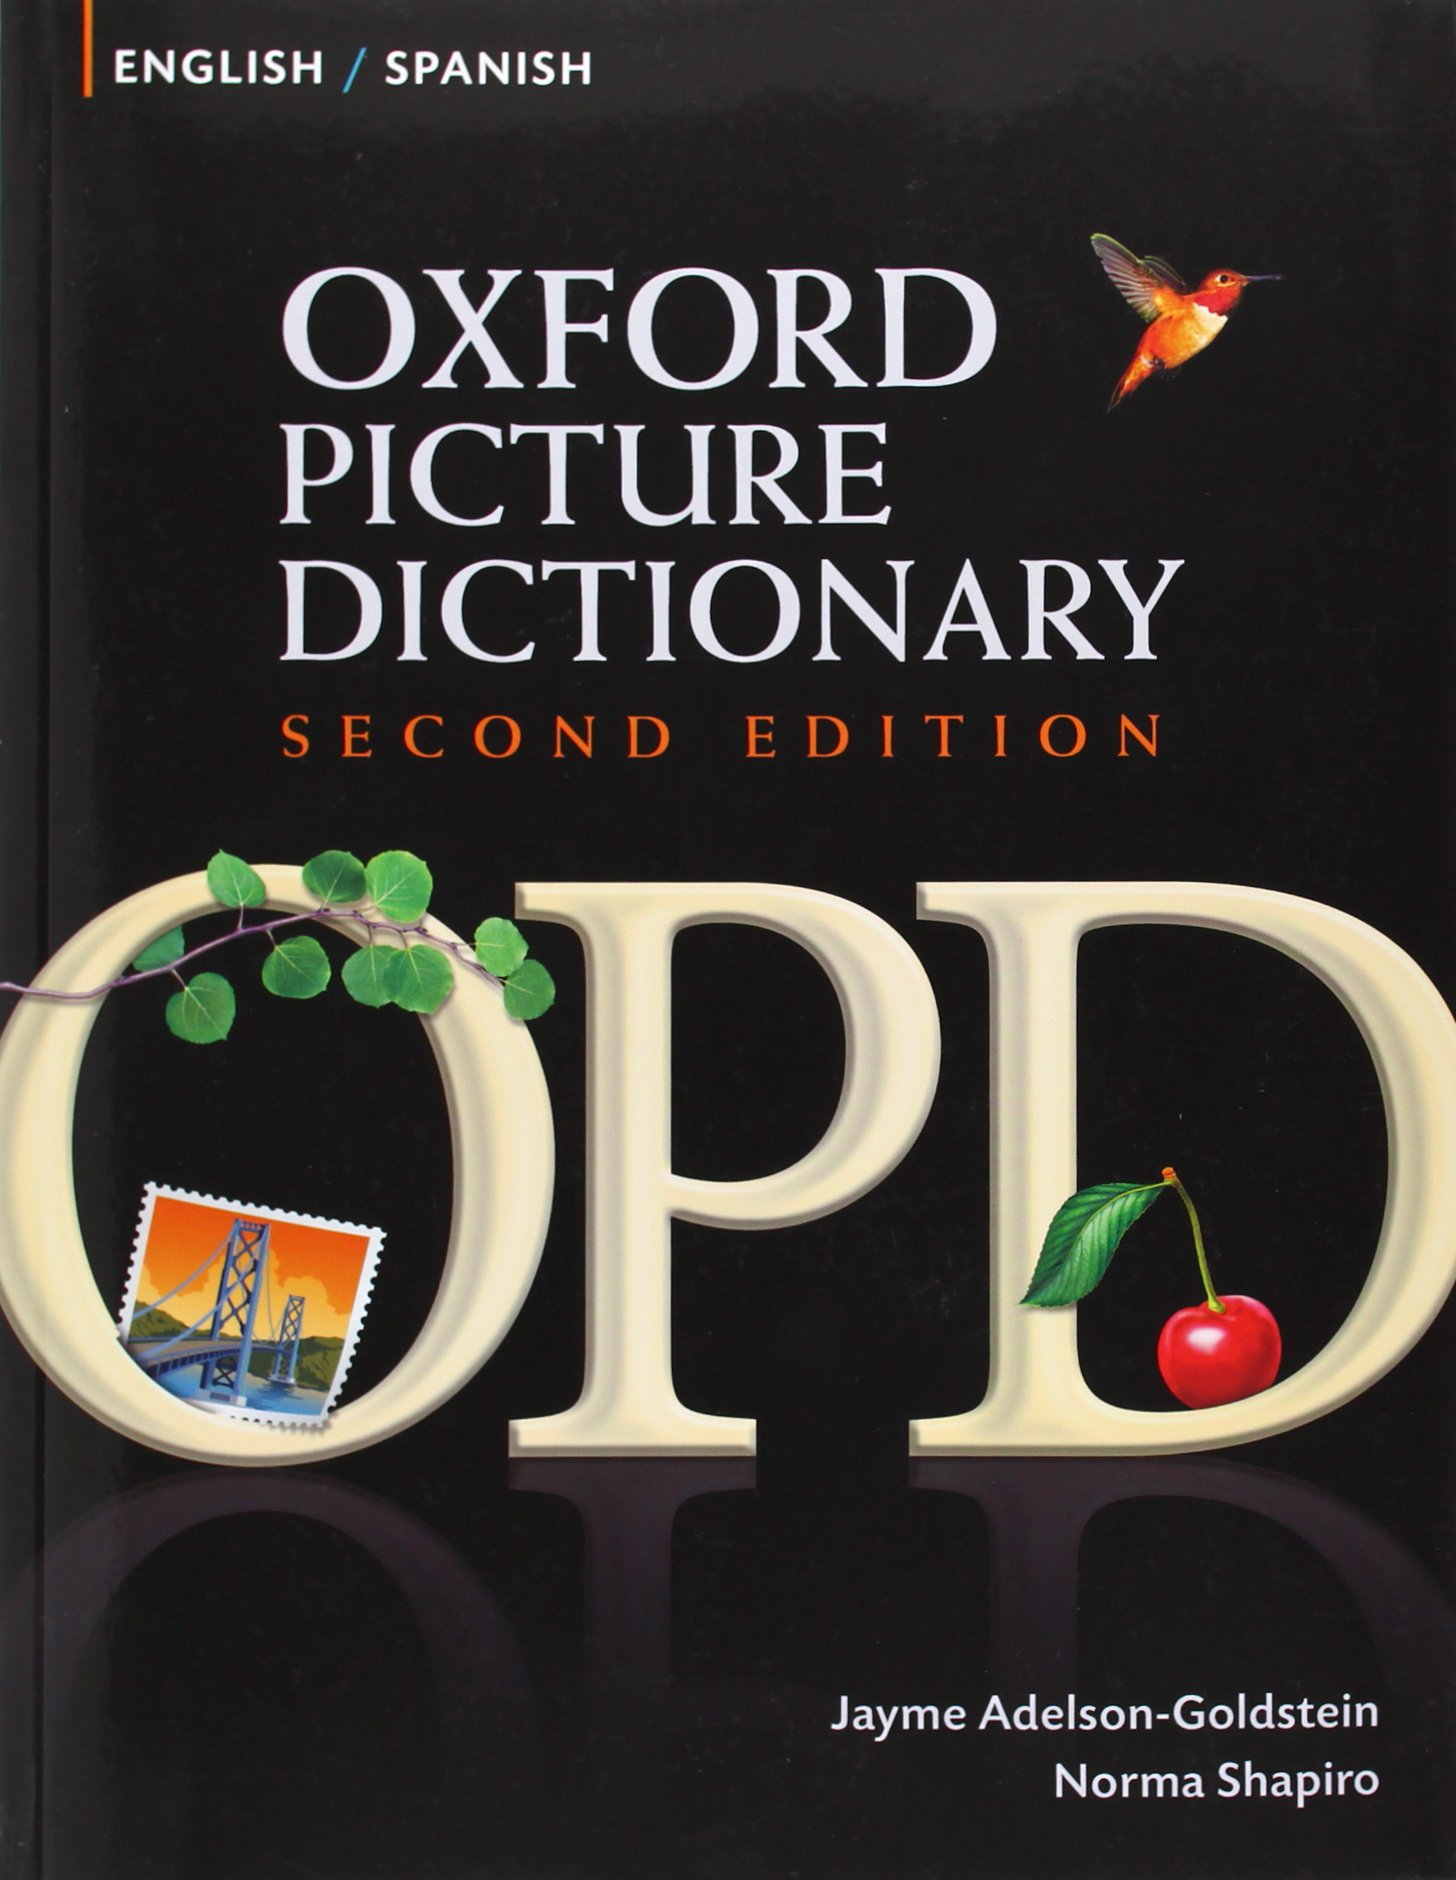 Oxford picture dictionary second edition english spanish jayme adelson goldstein norma shapiro 9780194740098 spanish amazon canada